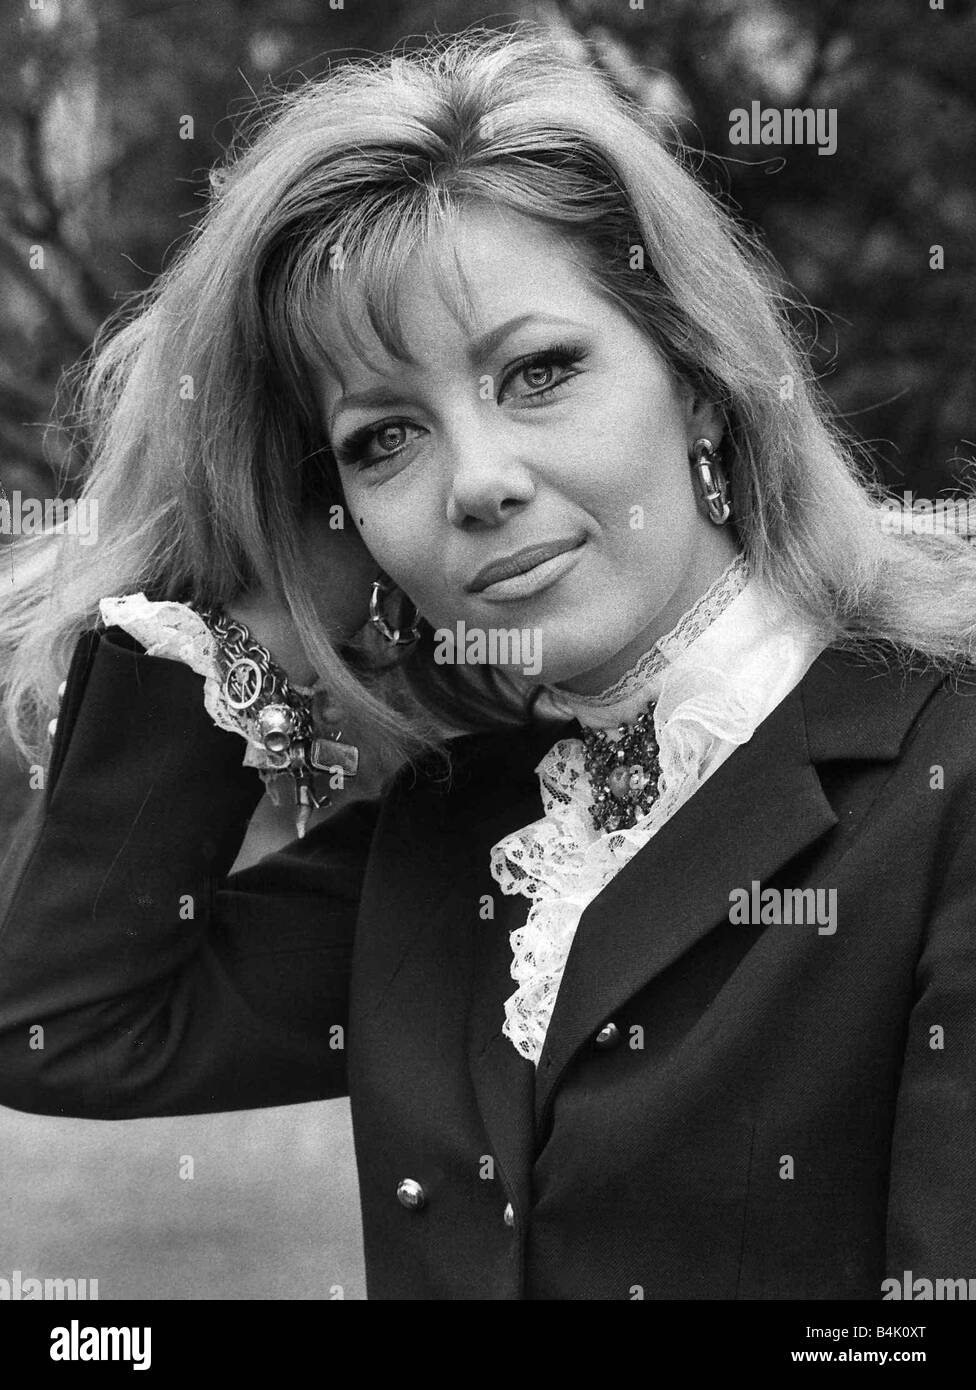 Ingrid Pitt nude photos 2019